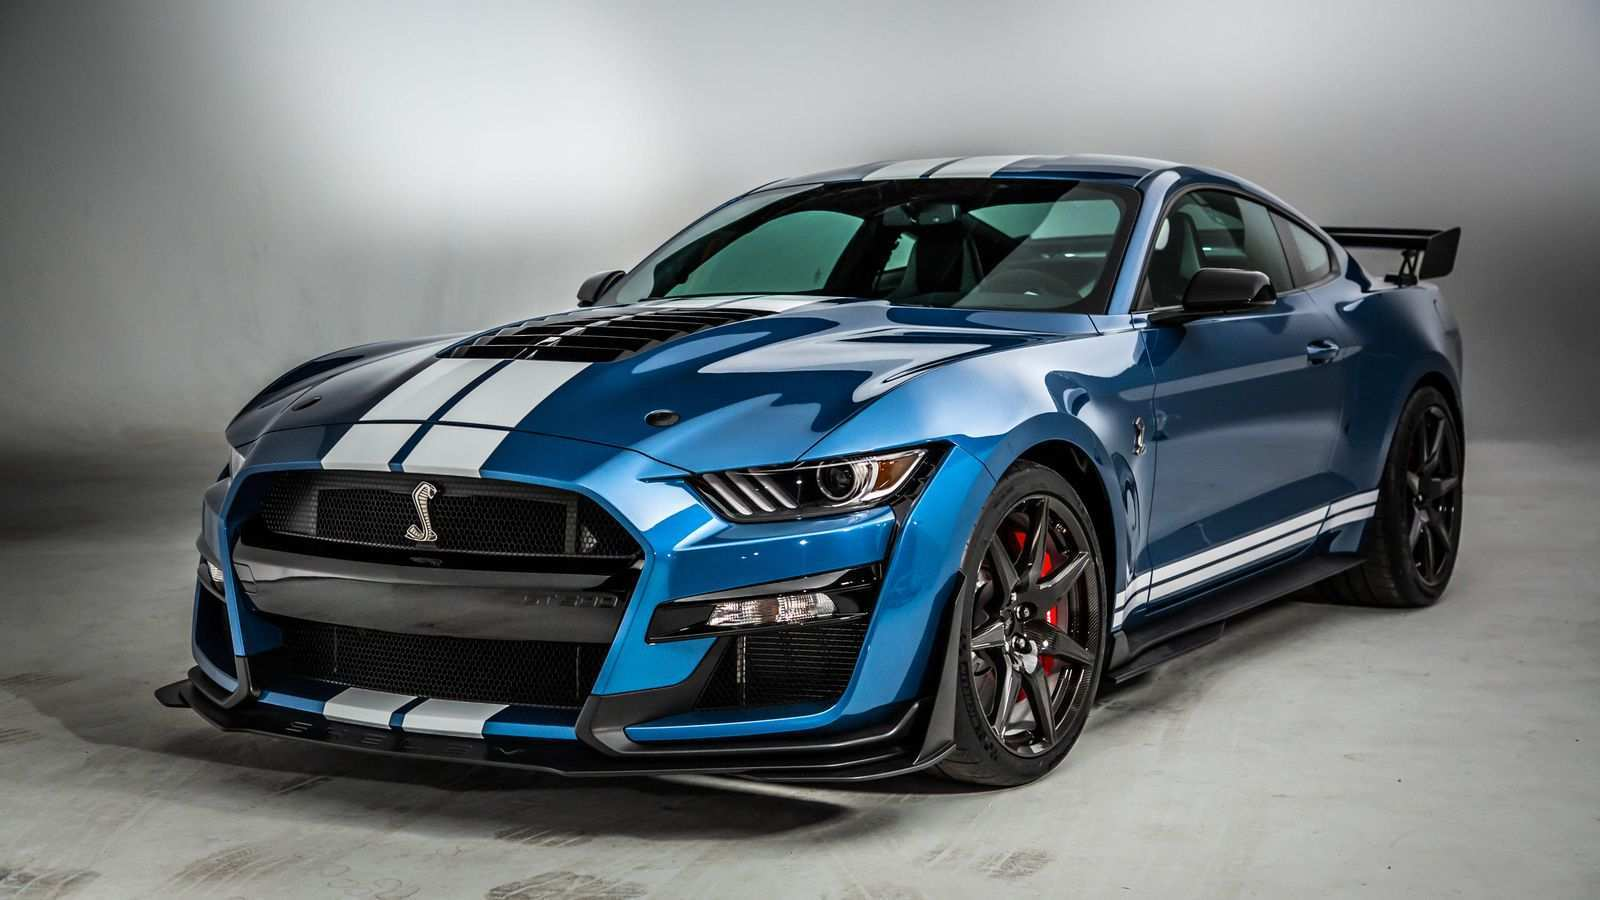 12 All New 2019 Ford Shelby Gt500 Concept by 2019 Ford Shelby Gt500